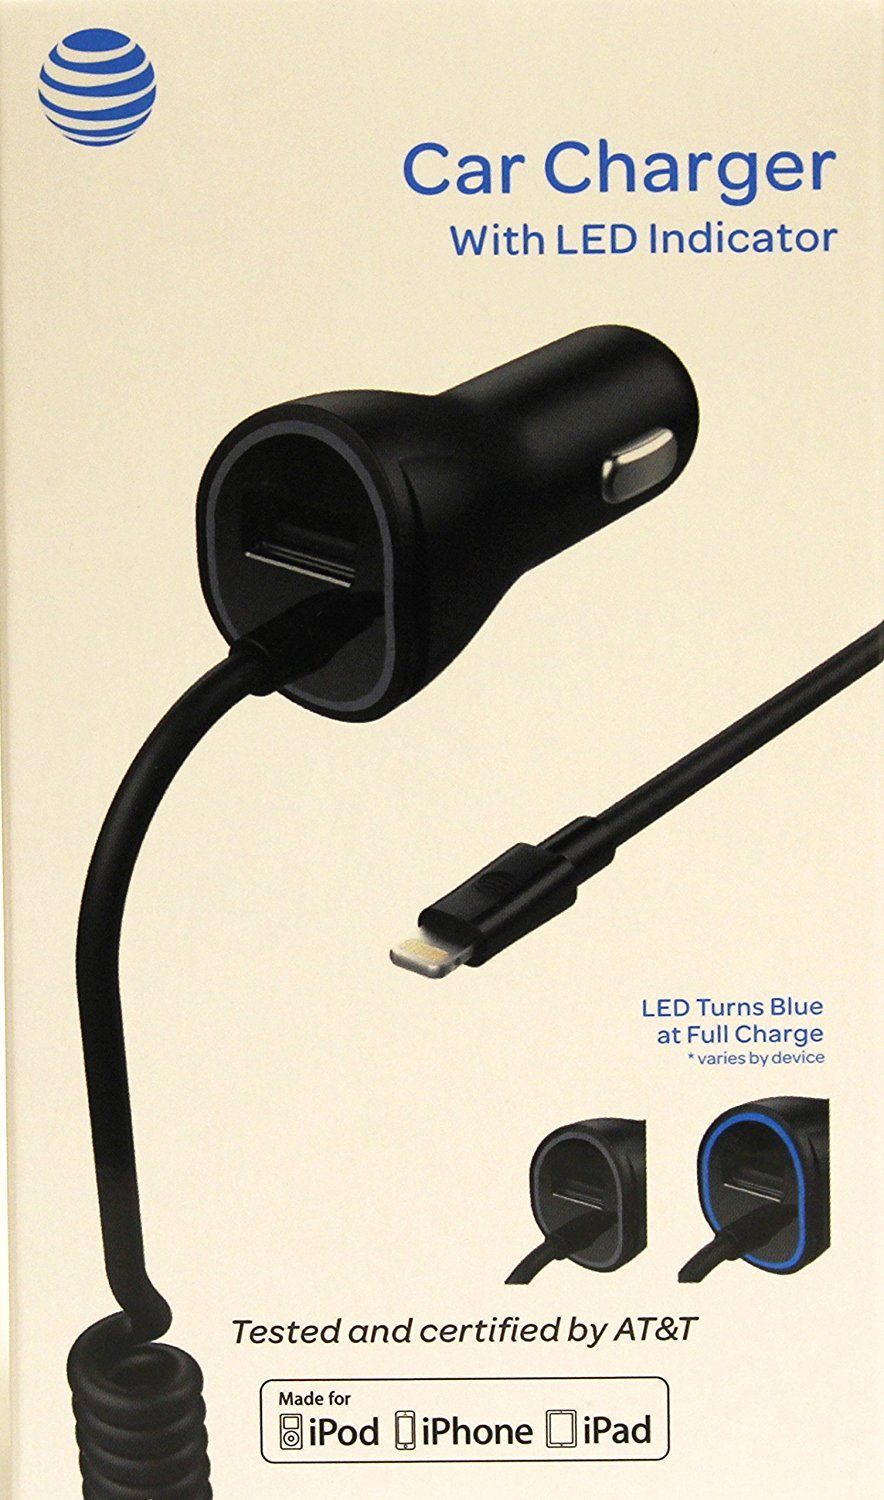 Atandt 4903g 3 4 Amp Mfi Lightning Rapid Car Charger With Smart Led